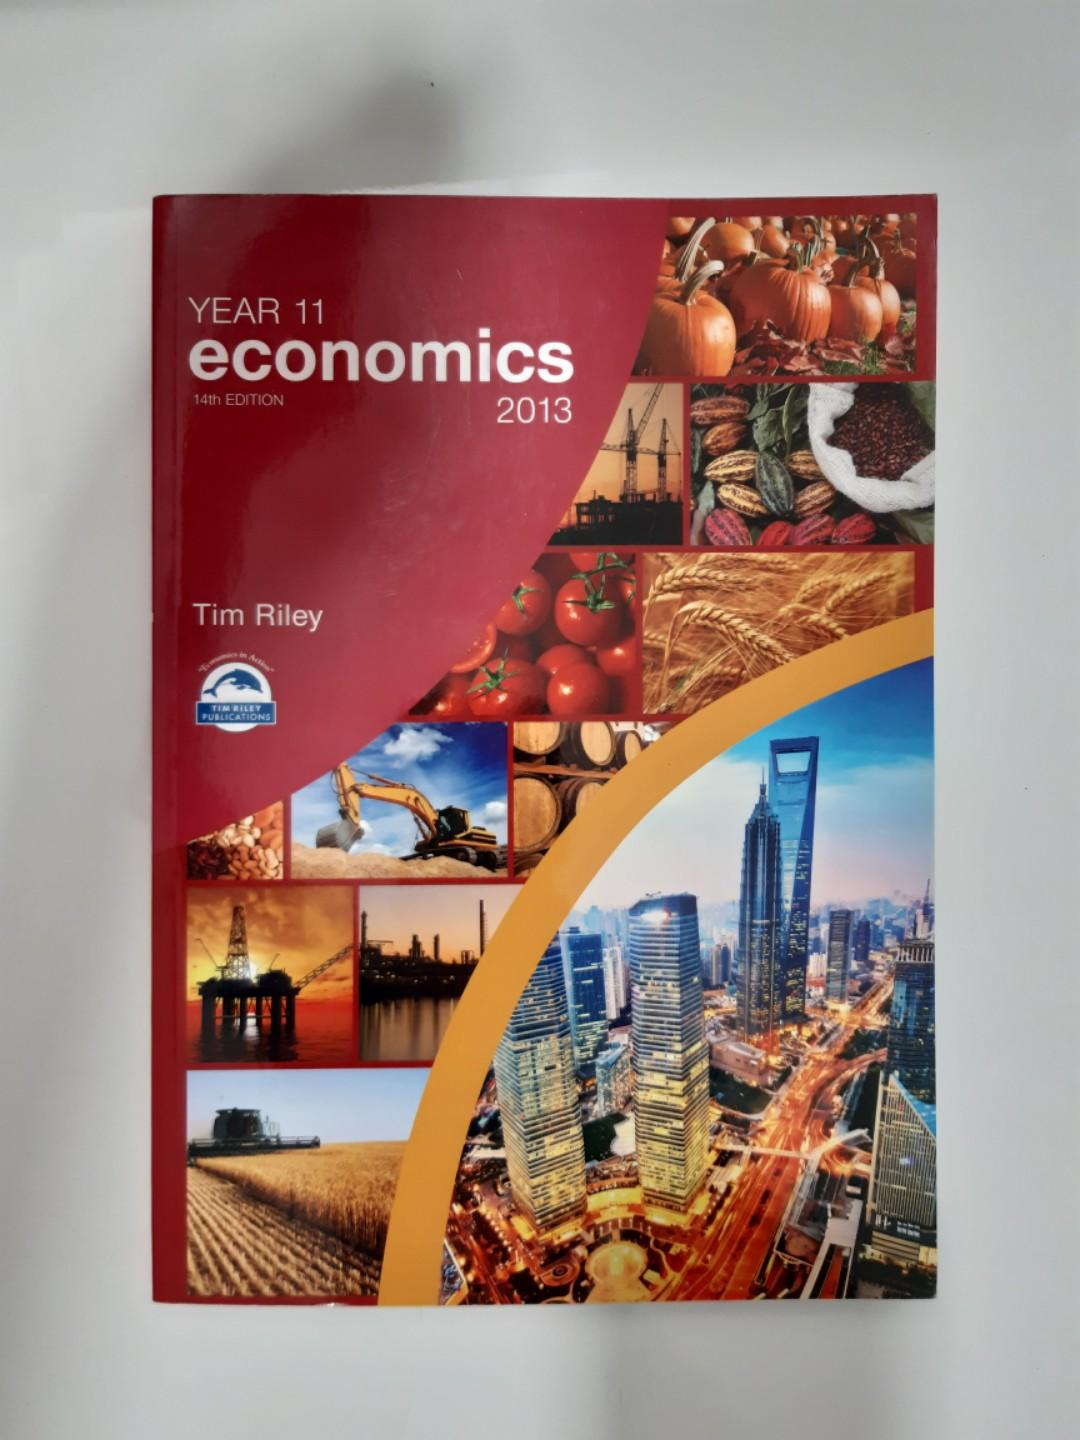 Year 11 economic textbook by Tim Riley (14th edition)